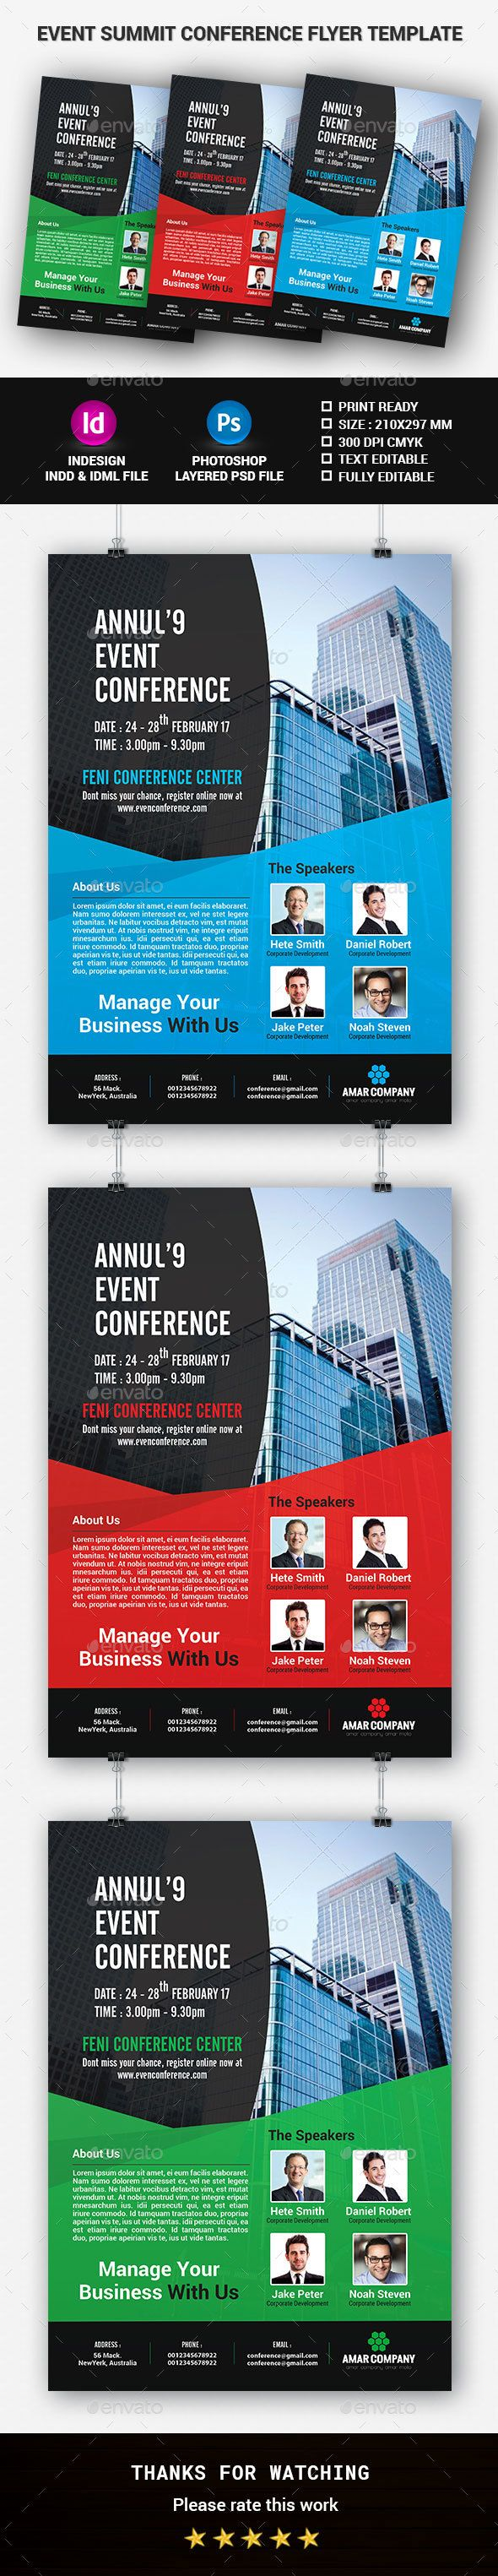 Event Summit Conference Flyer Template  Flyer Template Font Logo